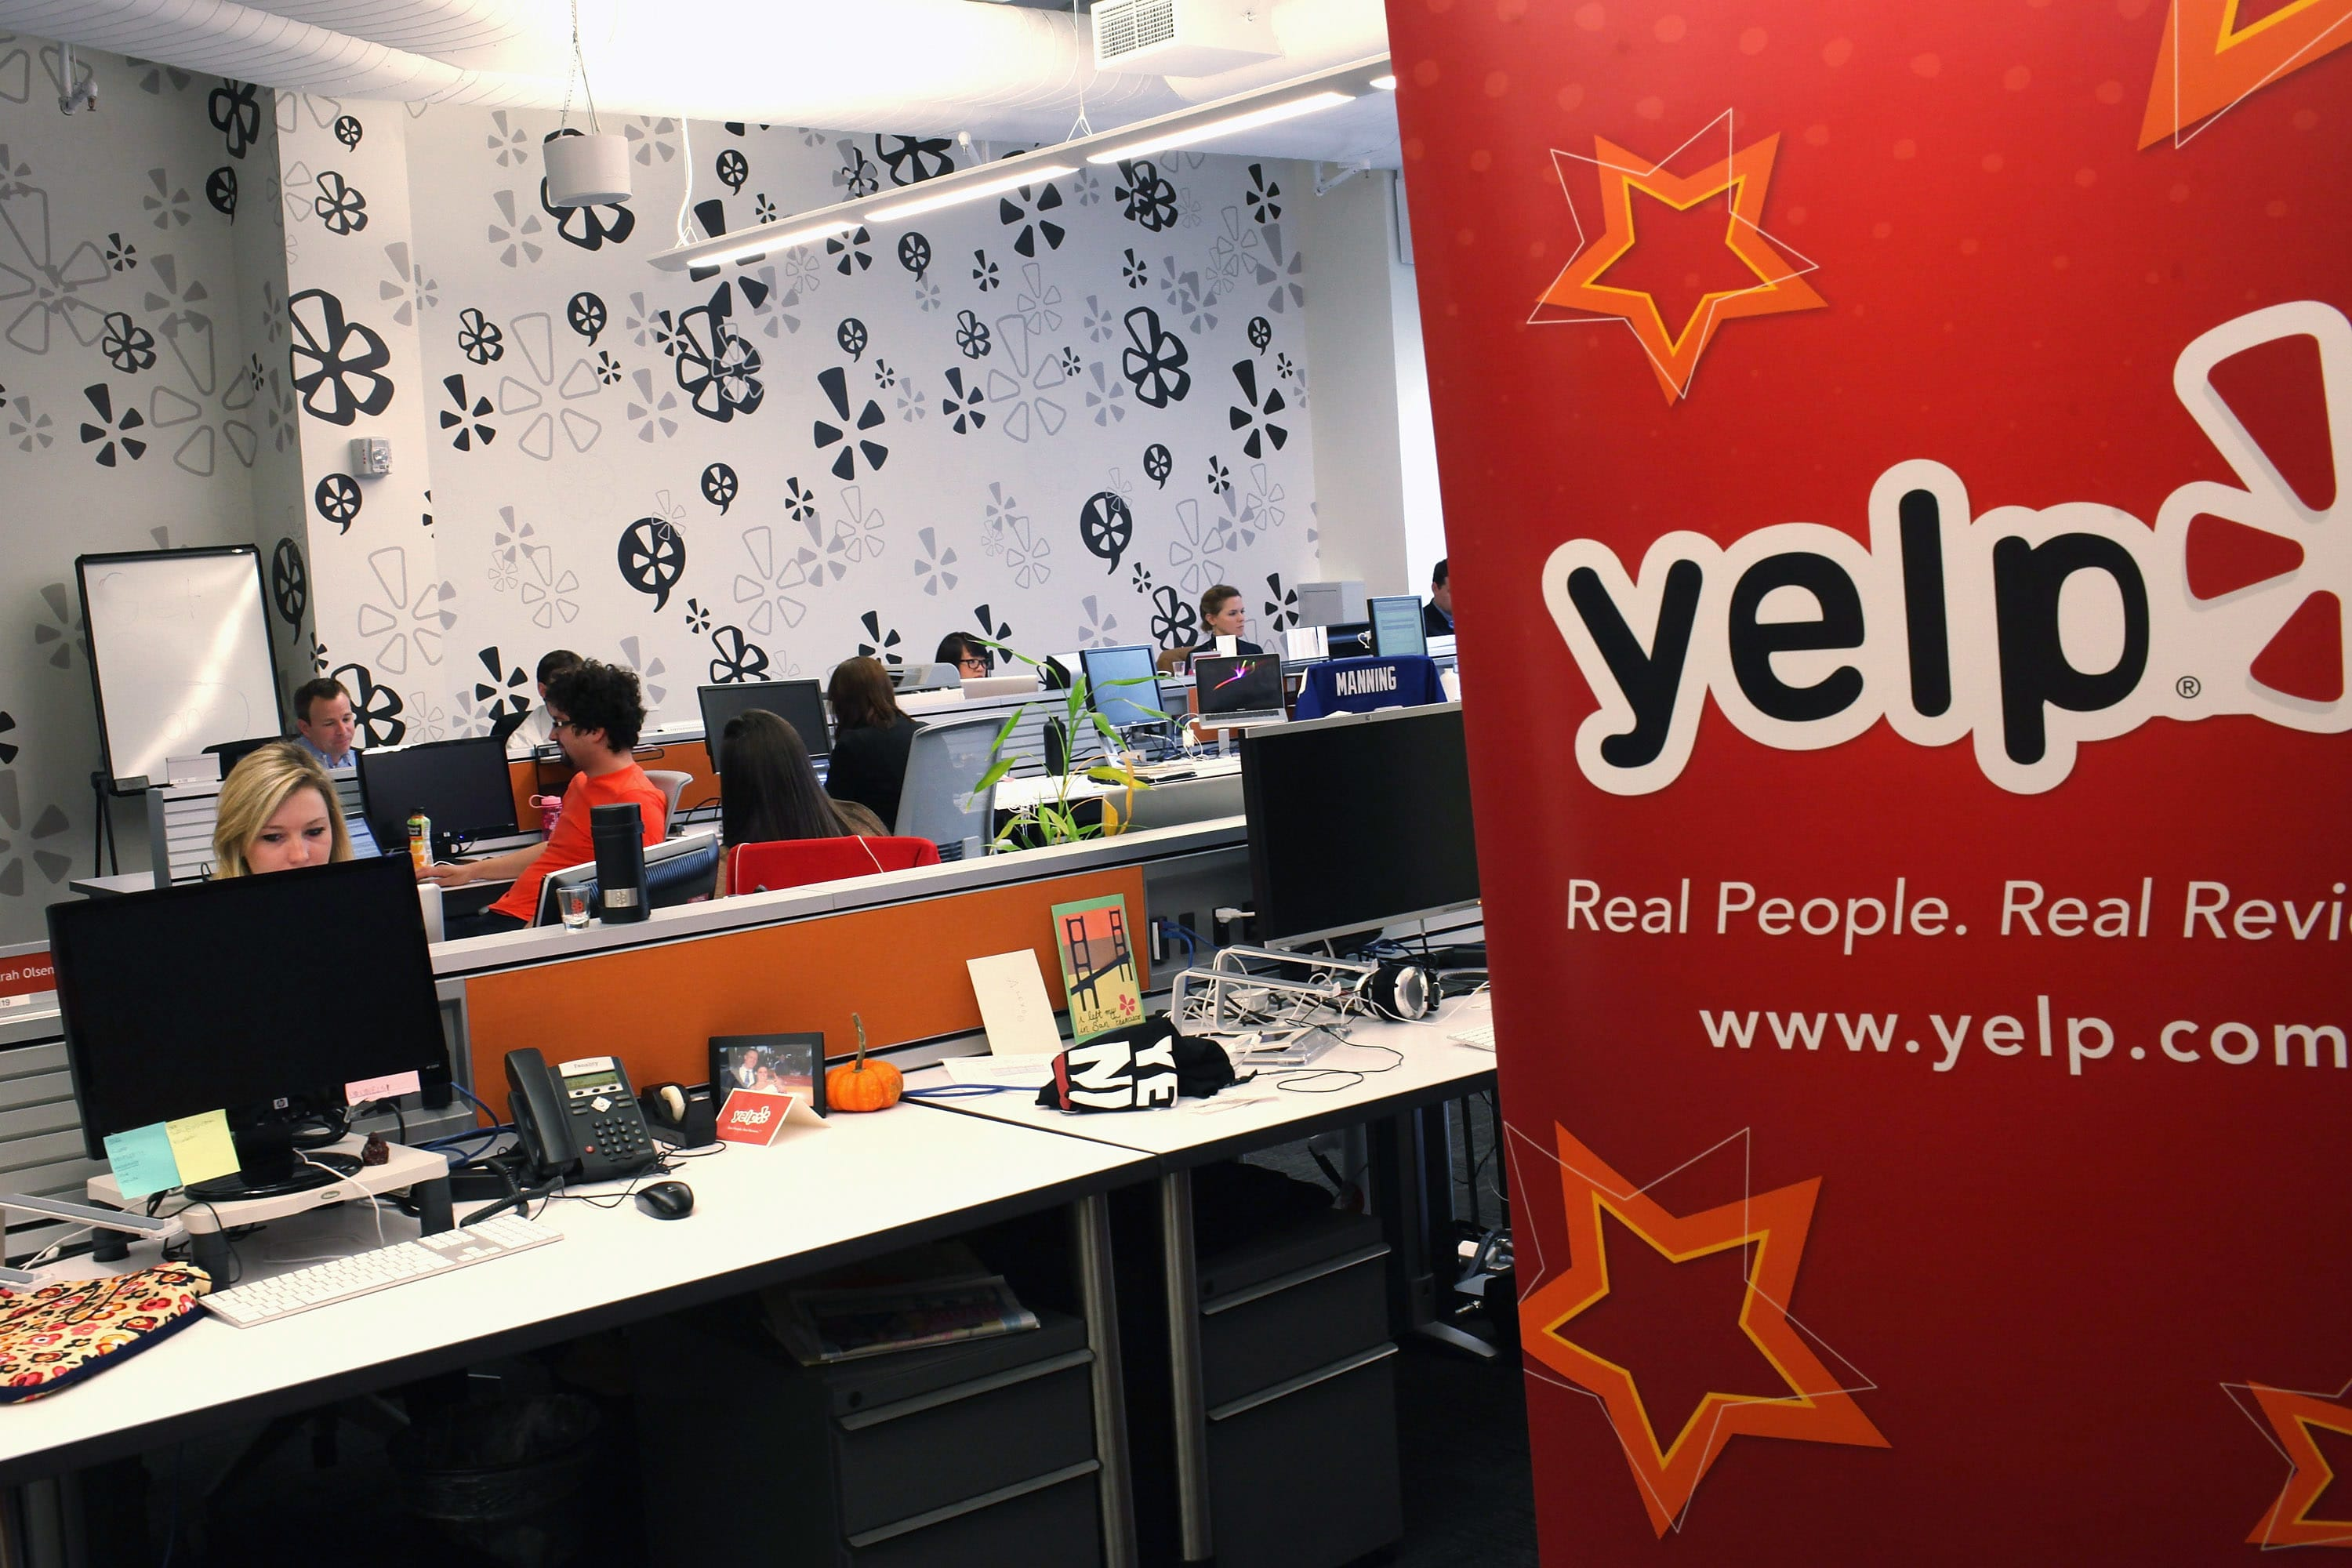 Yelp will bring back most of its 1,100 furloughed employees next month